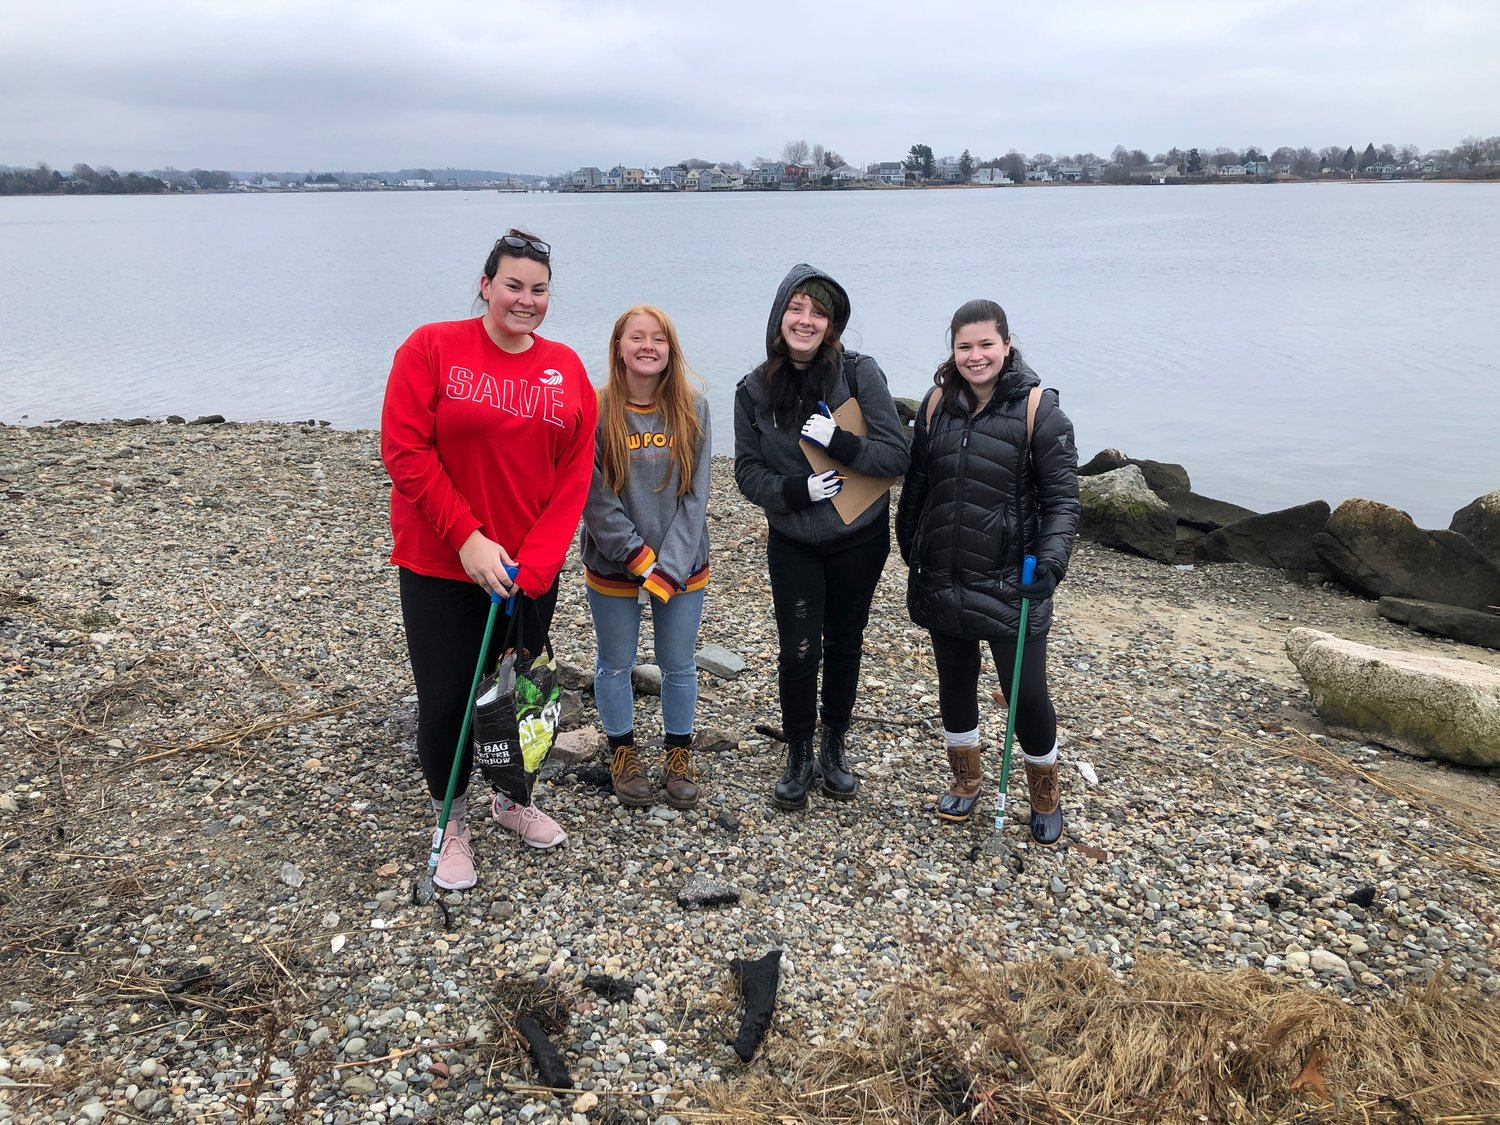 Students from Salve Regina University were among the volunteers who helped out at the Gull Cove cleanup on Saturday.